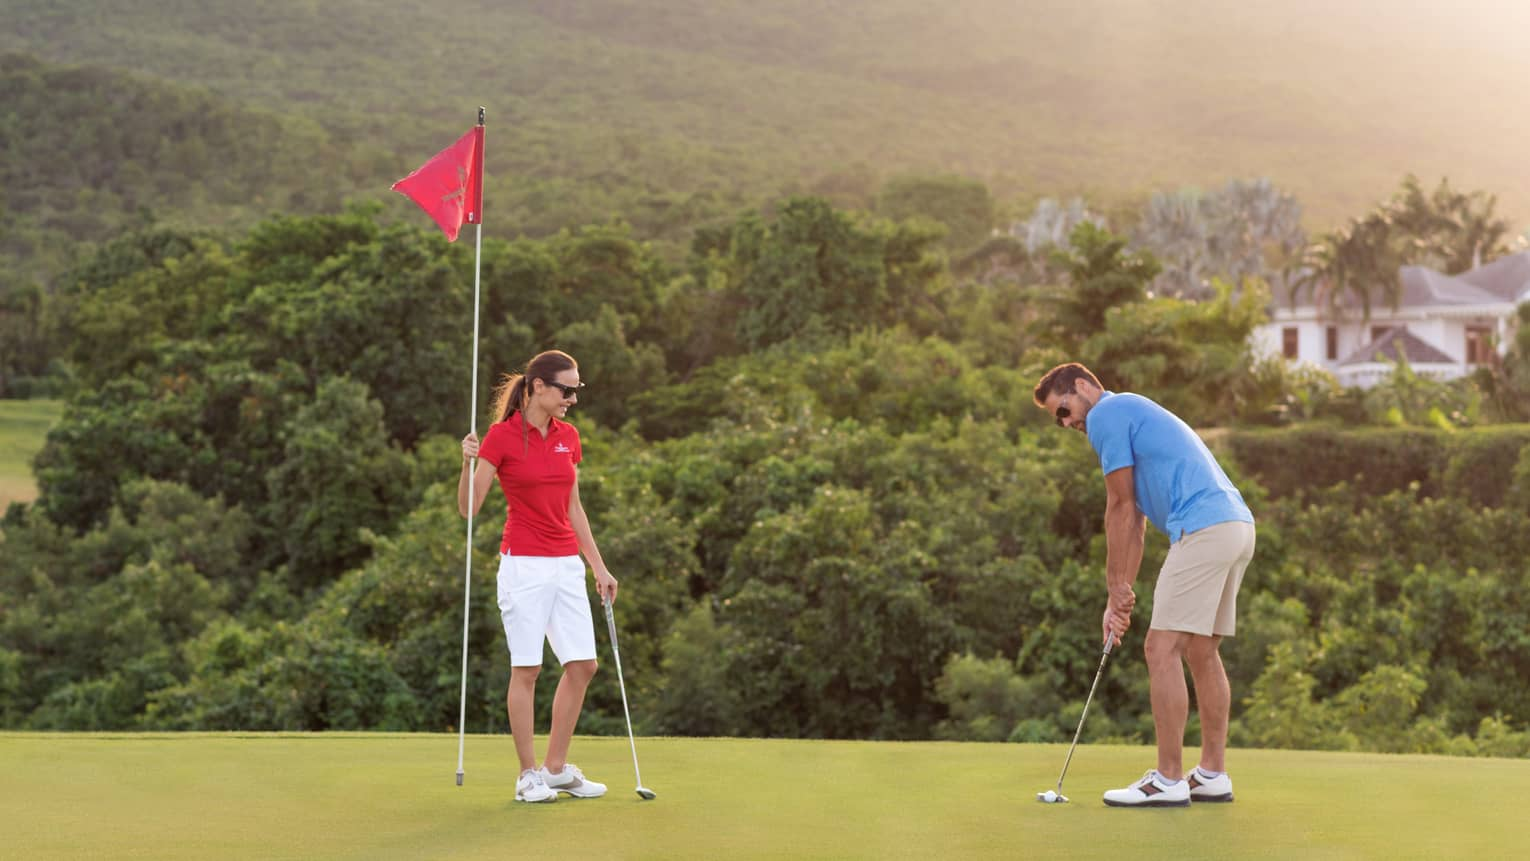 Nevis golf course green on hill, woman holds red flag as man prepares to putt